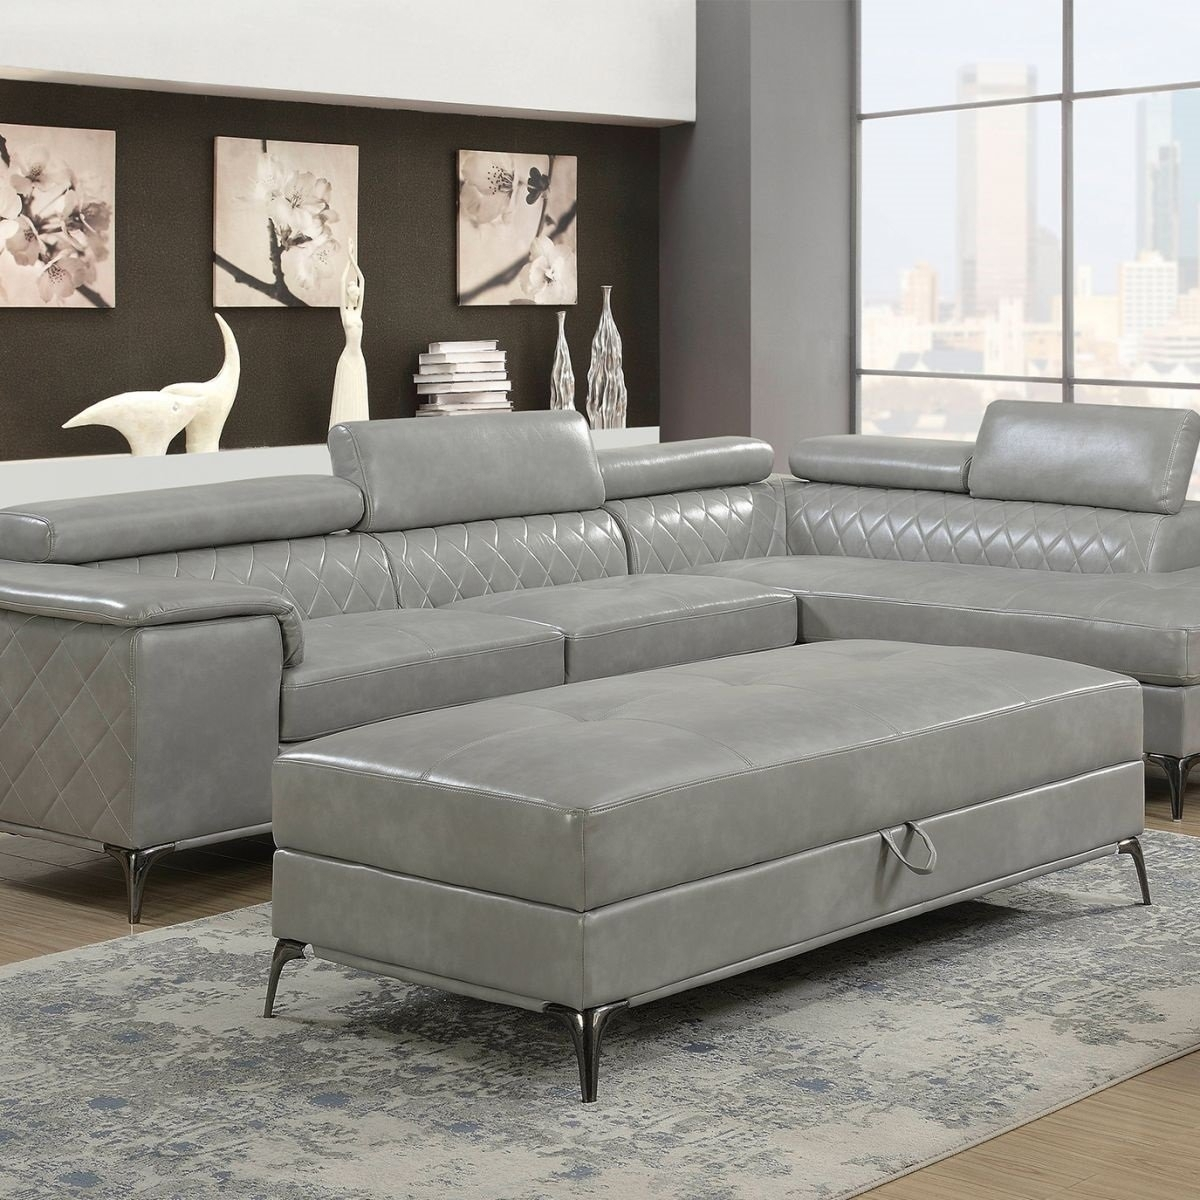 Worthington Grey 2 Pc Sectional & Ottoman | Badcock & More Inside Cosmos Grey 2 Piece Sectionals With Laf Chaise (Image 25 of 25)